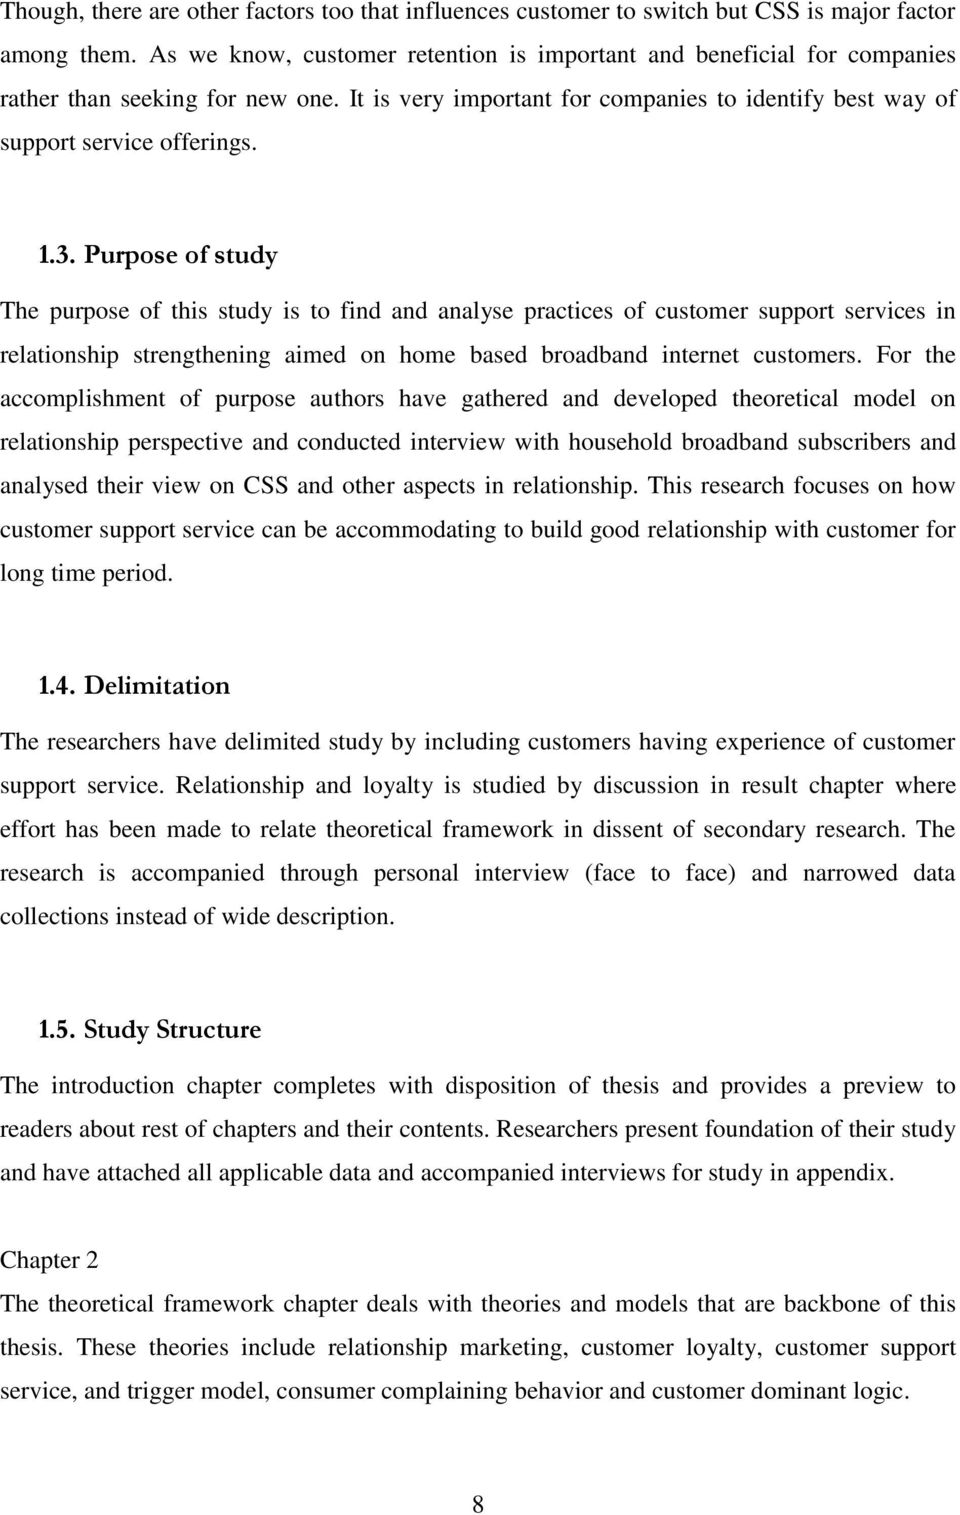 Purpose of study The purpose of this study is to find and analyse practices of customer support services in relationship strengthening aimed on home based broadband internet customers.